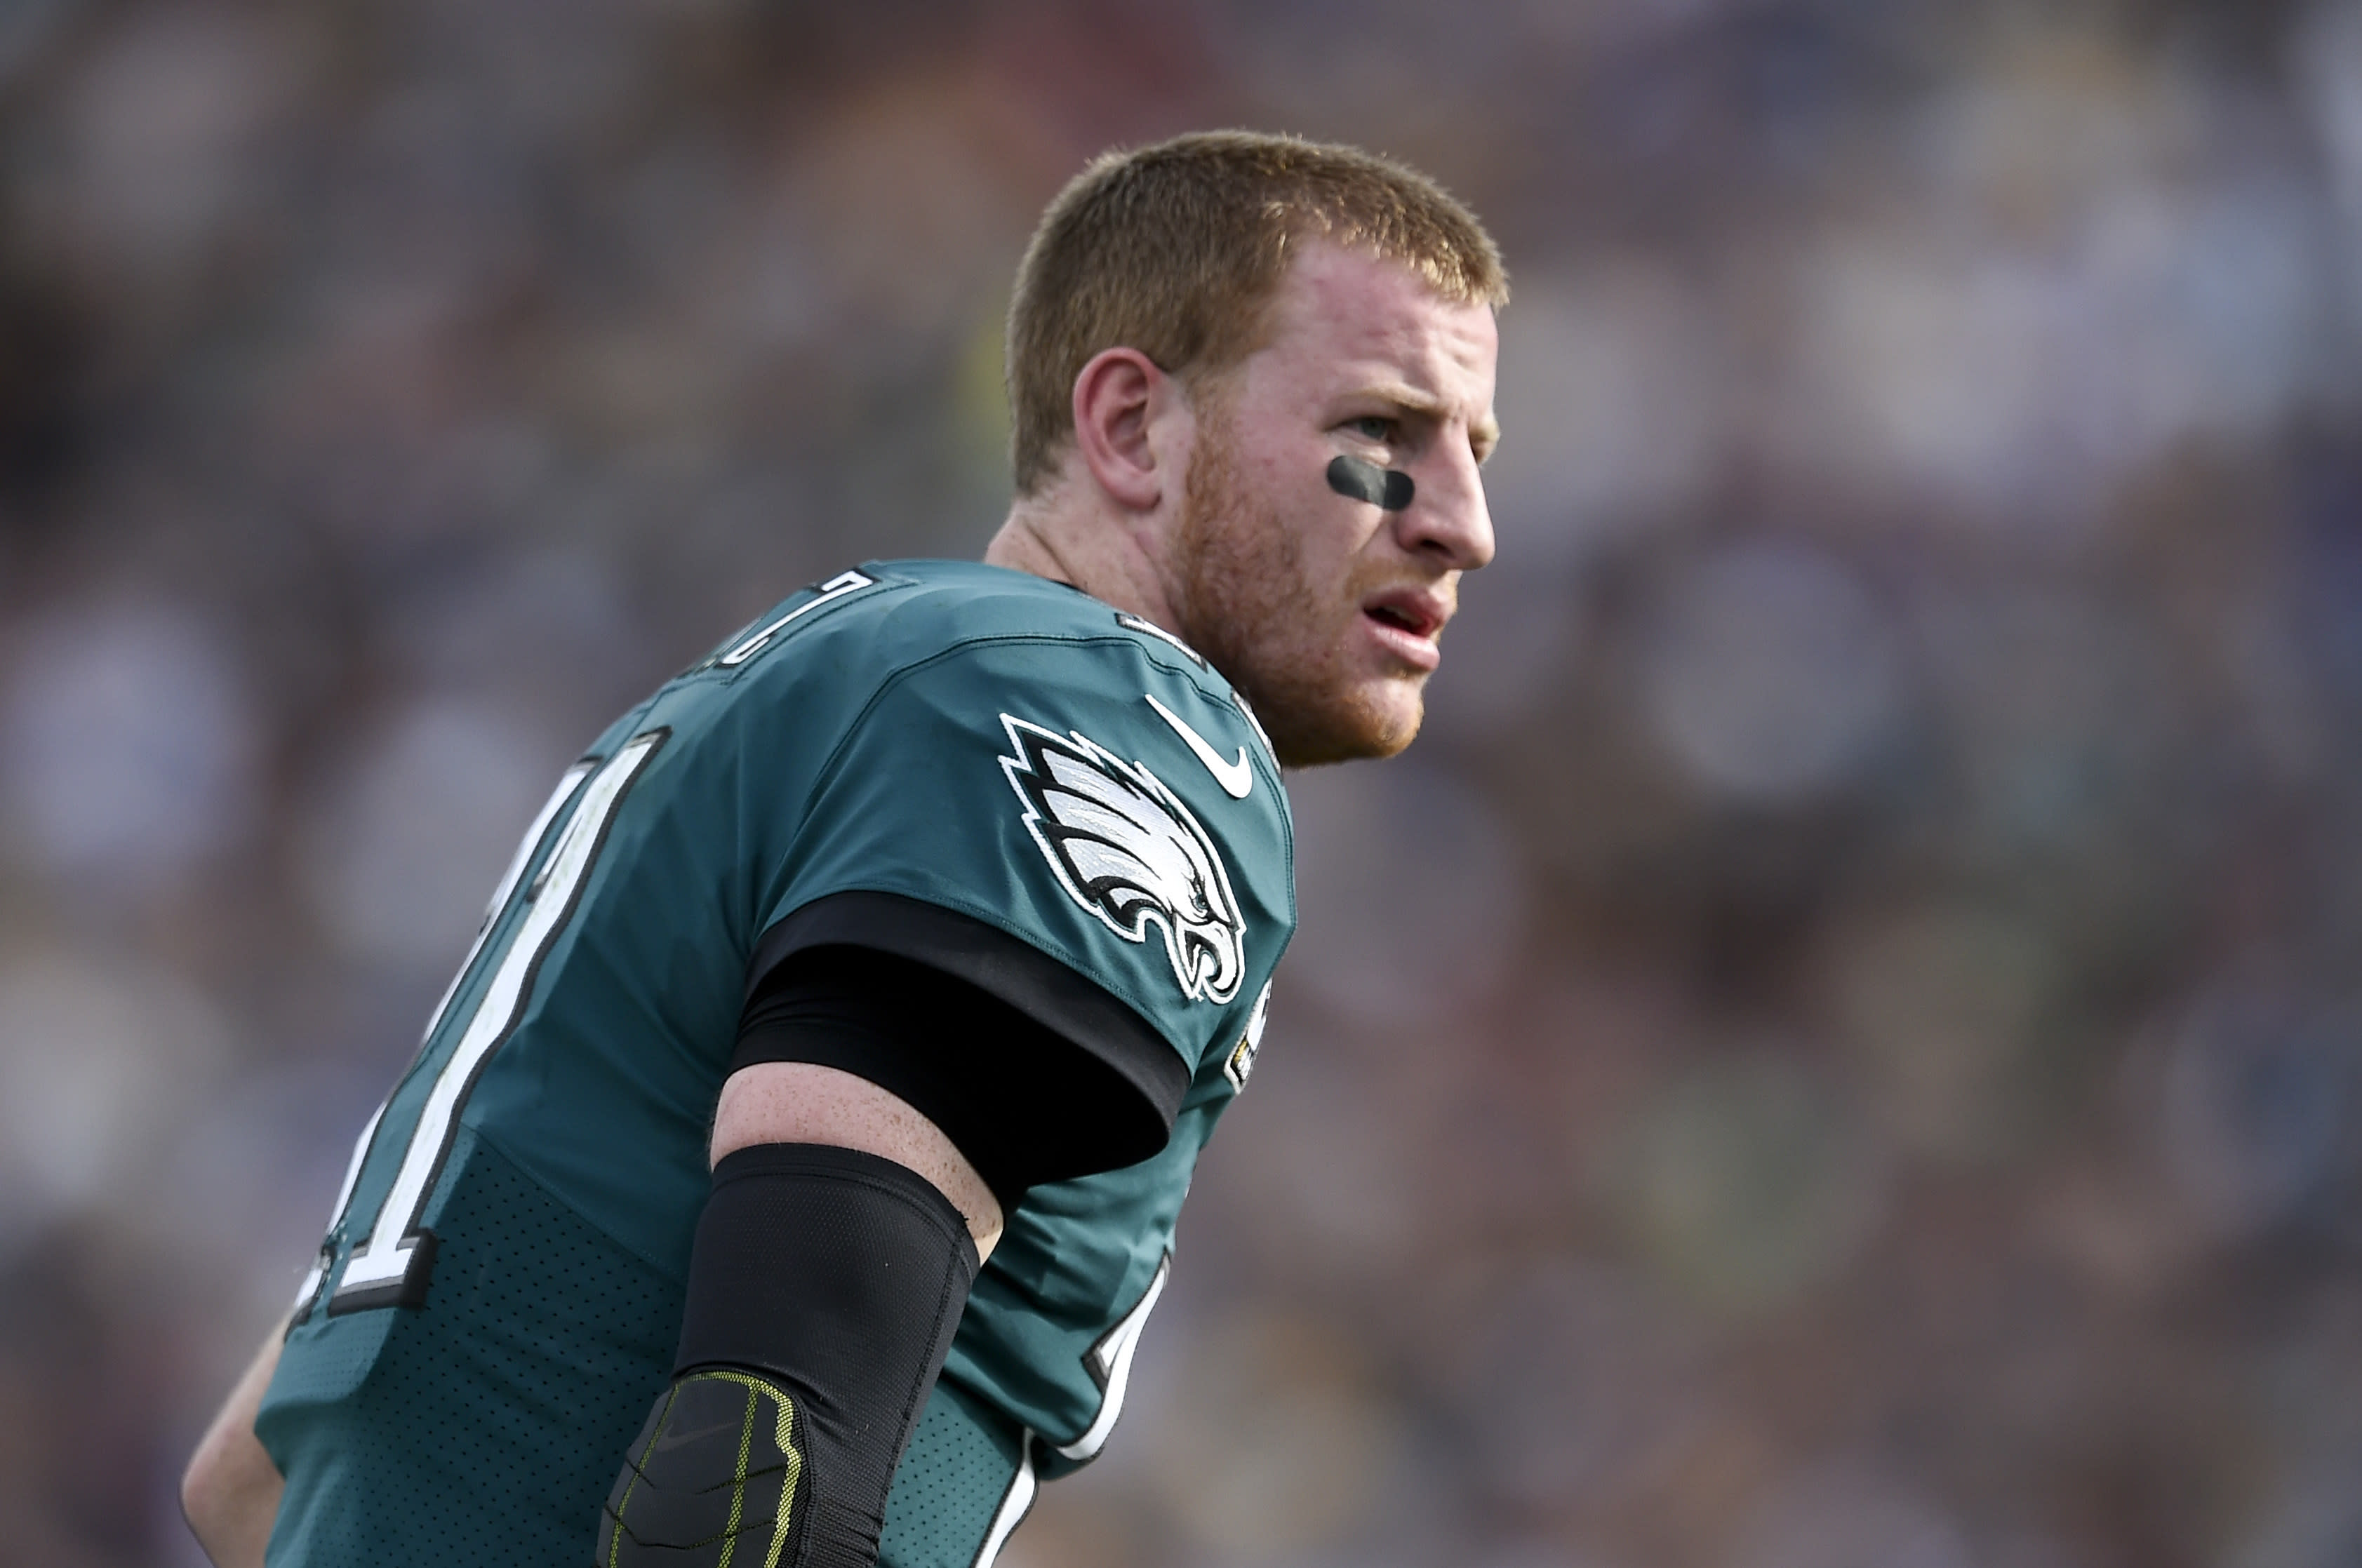 Carson Wentz in good spirits as he ribs Lane Johnson for penalty on play he got hurt